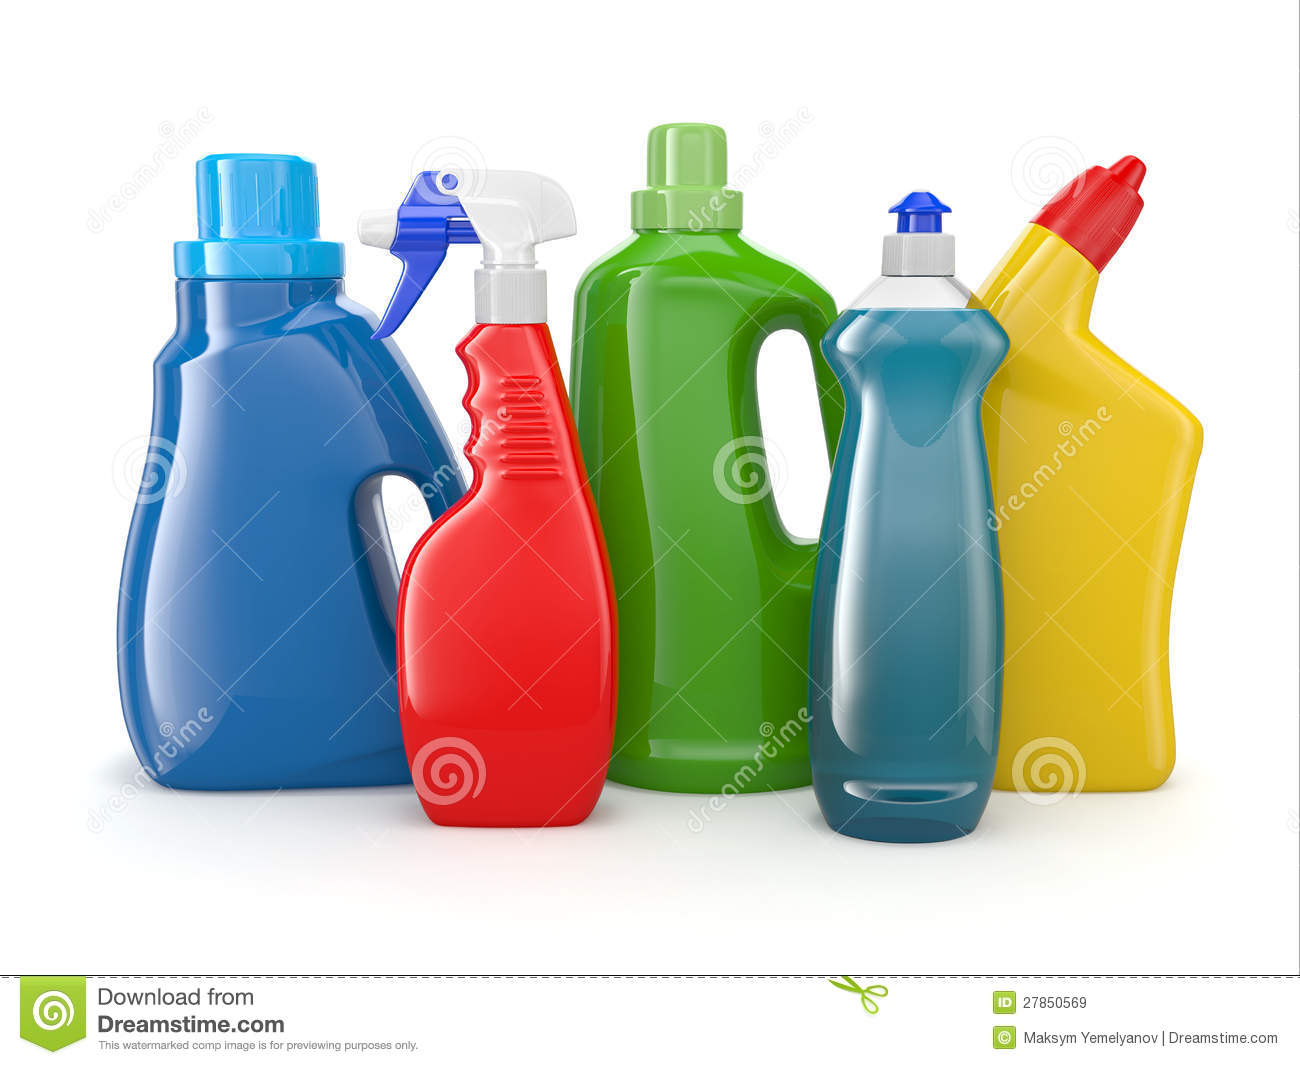 Plastic Detergent Bottles Cleaning Products Royalty Free Stock Images Ima